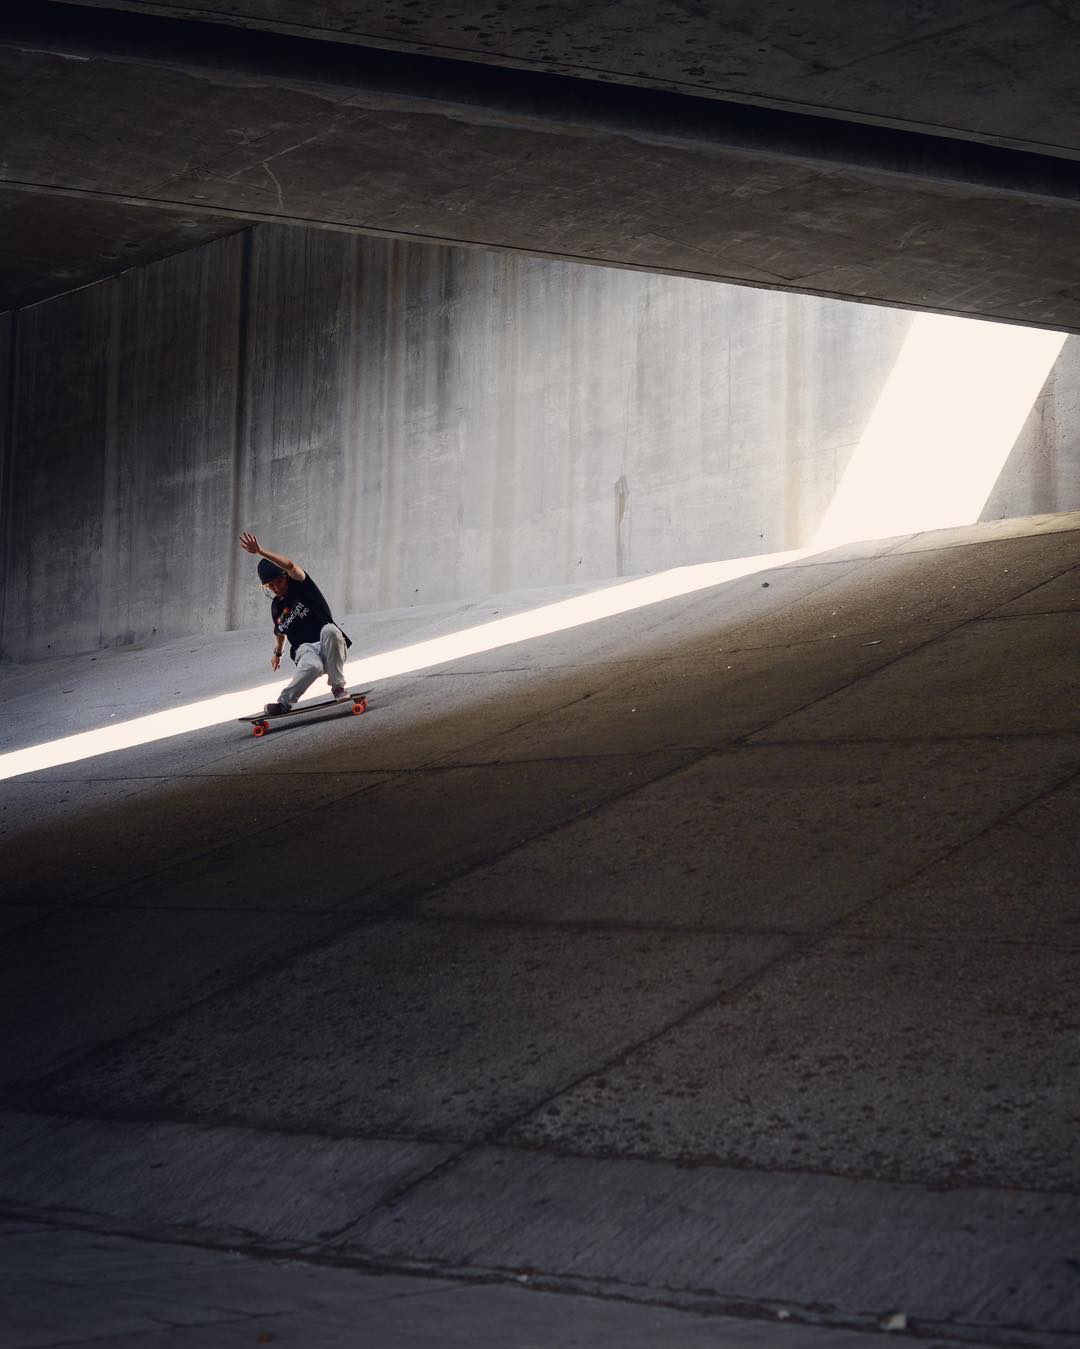 Team rider @laurent_perigault shines in the light.  #paristrucks #paristruckco